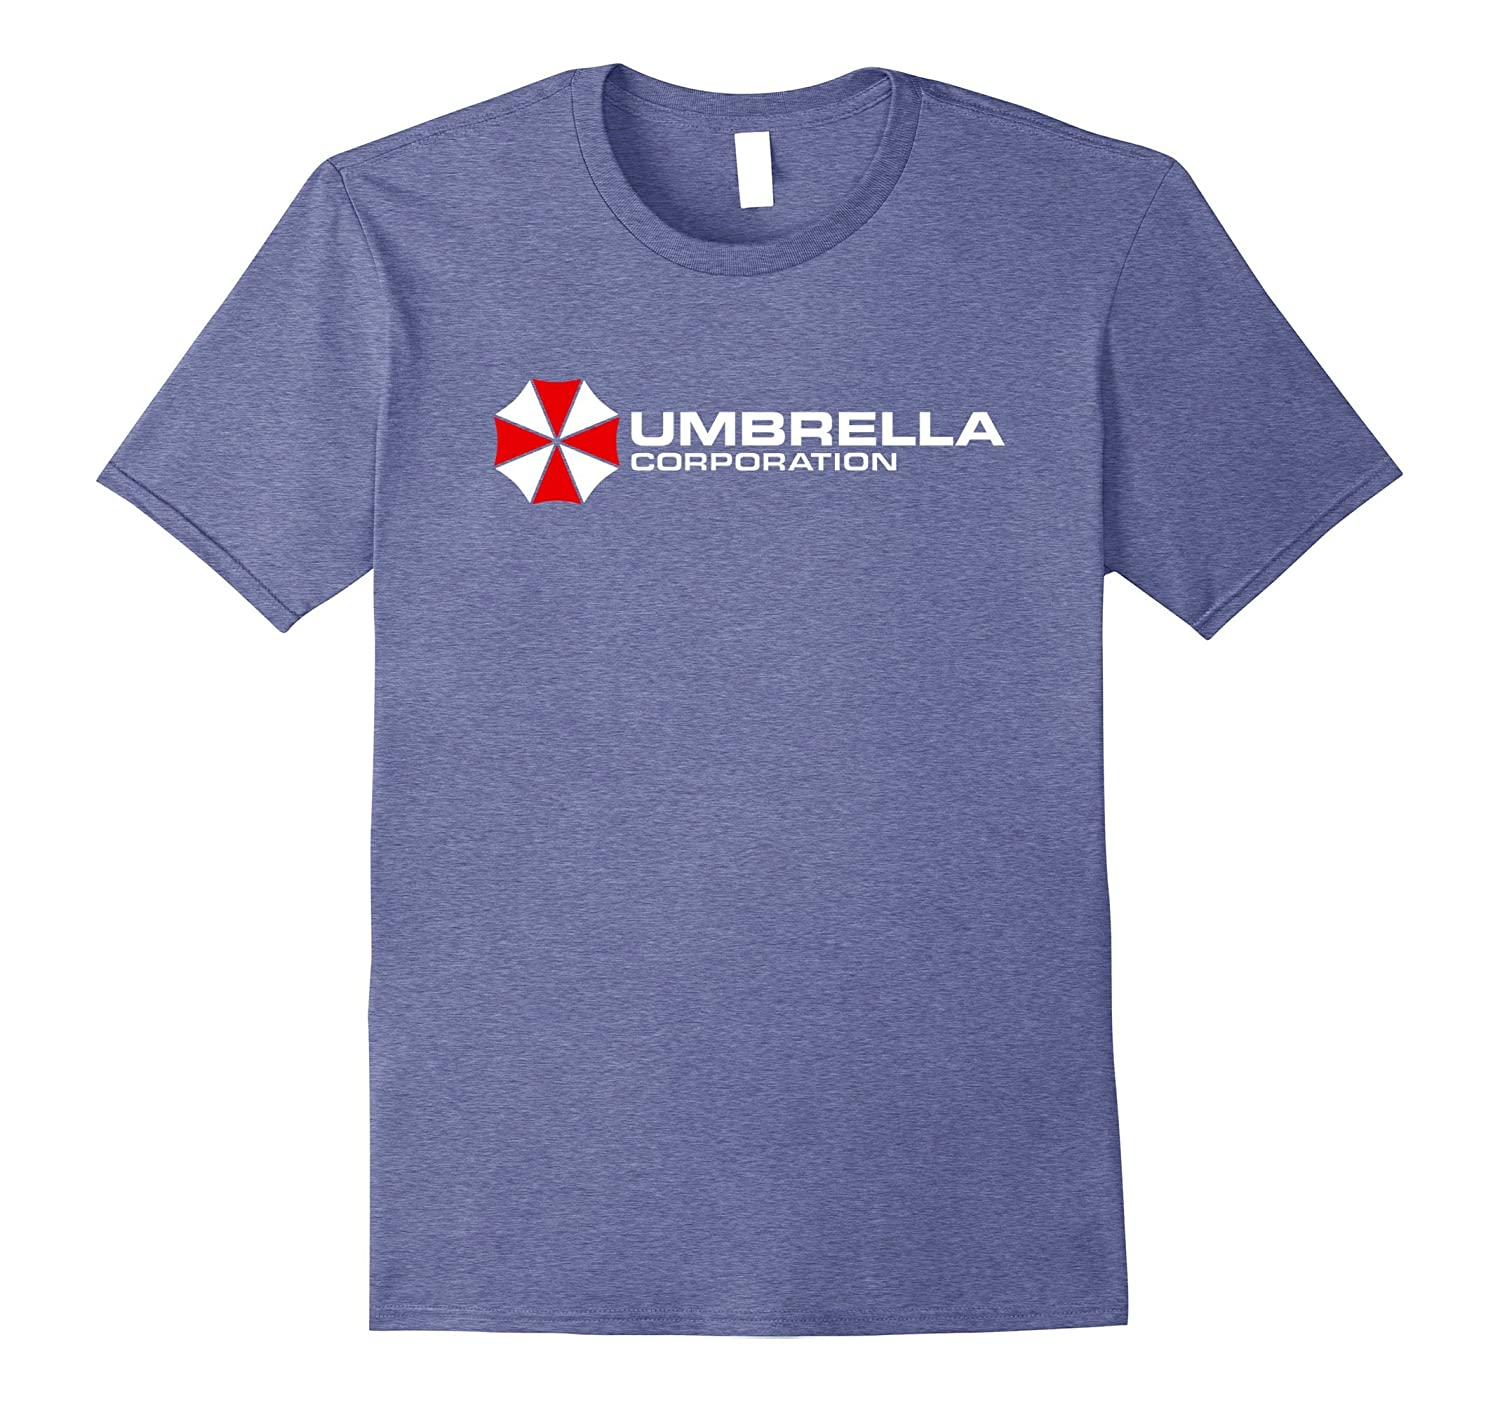 Umbrella corporation t shirt company logo rt rateeshirt for T shirts for business logo